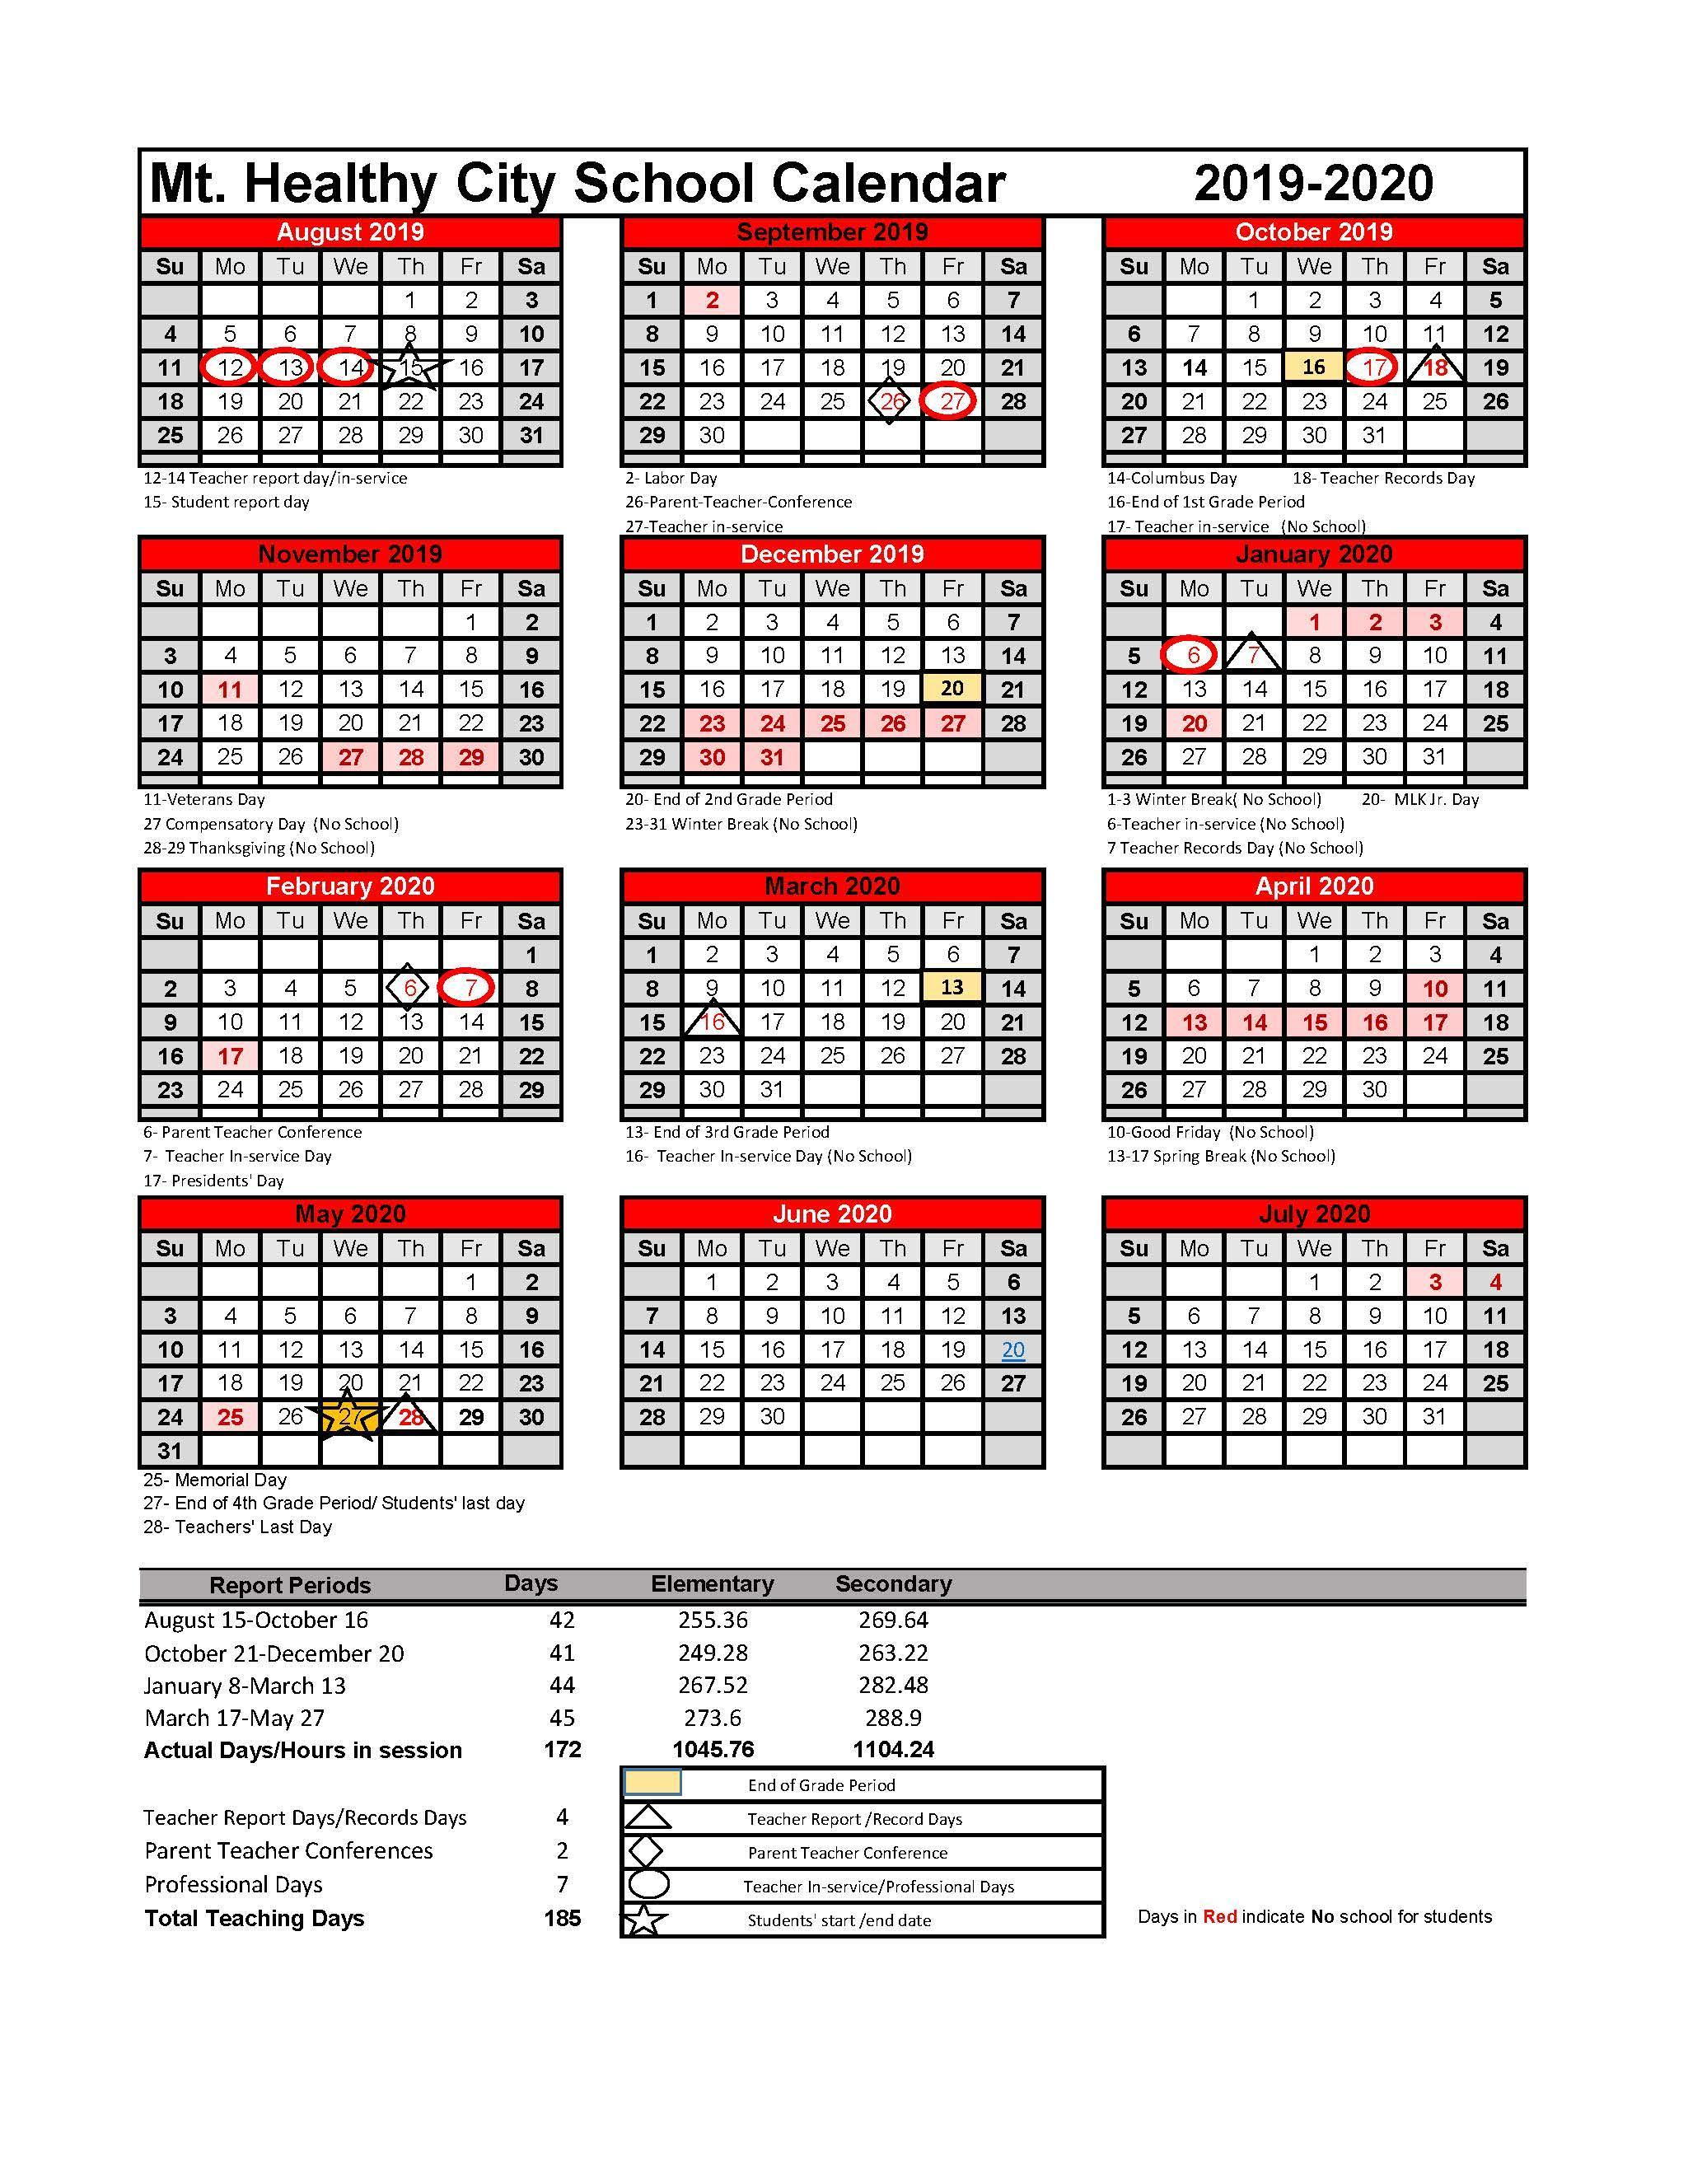 Cincinnati Public Schools Calendar.2019 2020 District Calendar 2019 2020 District Calendar Mt